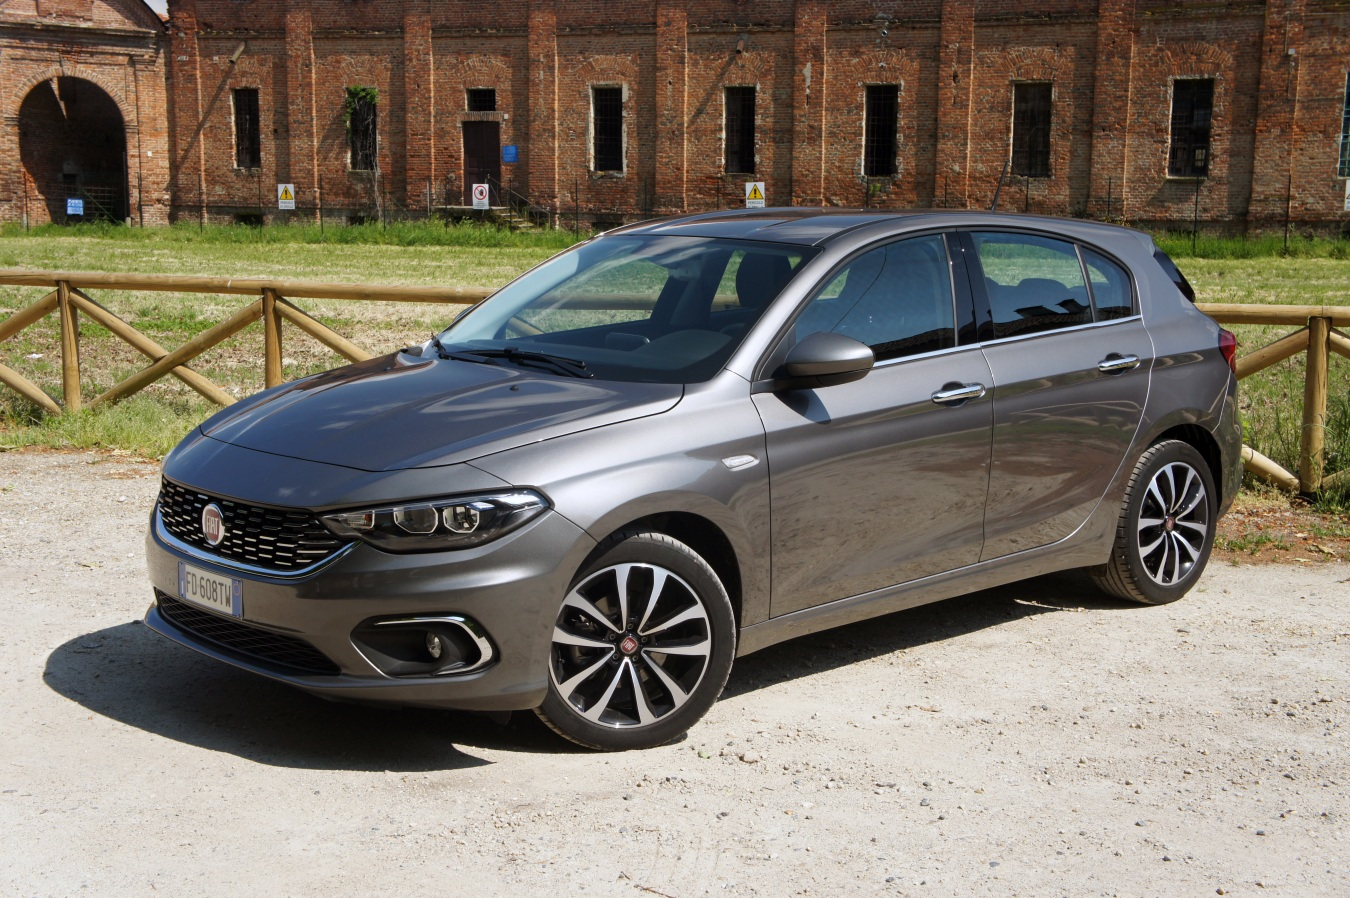 el fiat tipo hatch t jet 120 cv ya est a la venta en espa a adaptado a glp. Black Bedroom Furniture Sets. Home Design Ideas